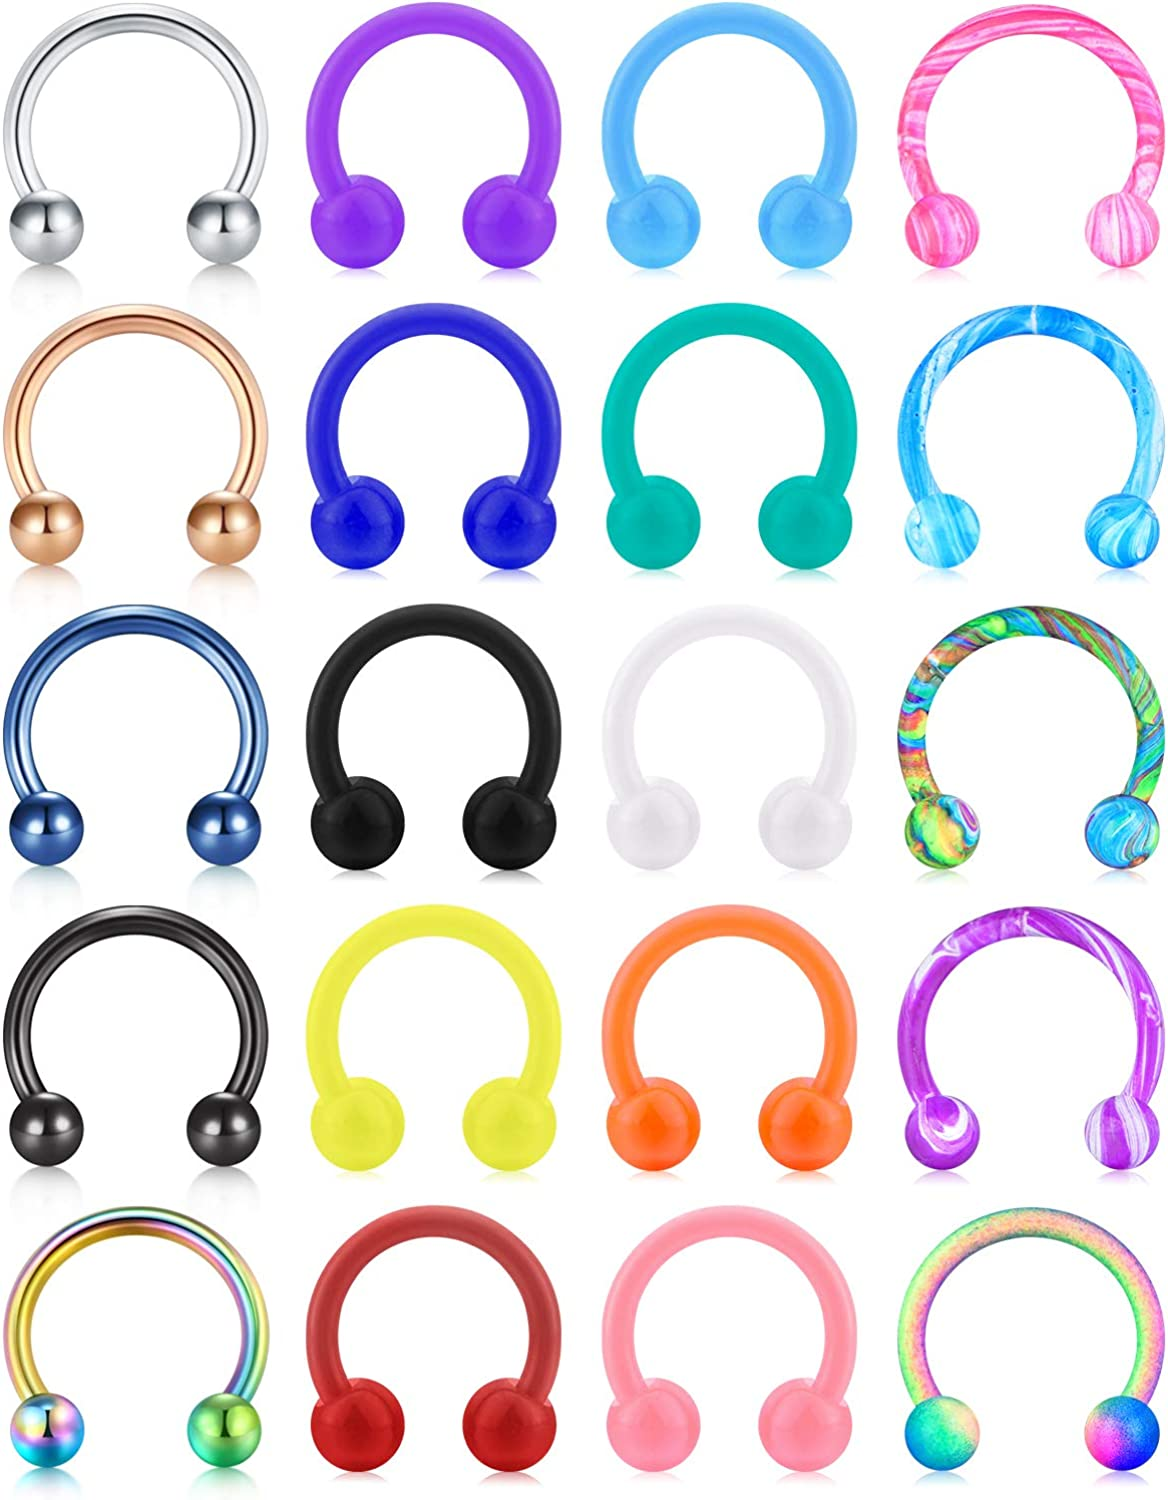 JFORYOU 16G Nose Septum Rings Horseshoe Barbell Piercing Jewelry Acrylic and Stainless Cartilage Helix Tragus Smiley Horseshoe Earrings Hoop Lip Rings Retainer Piercing for Women Men